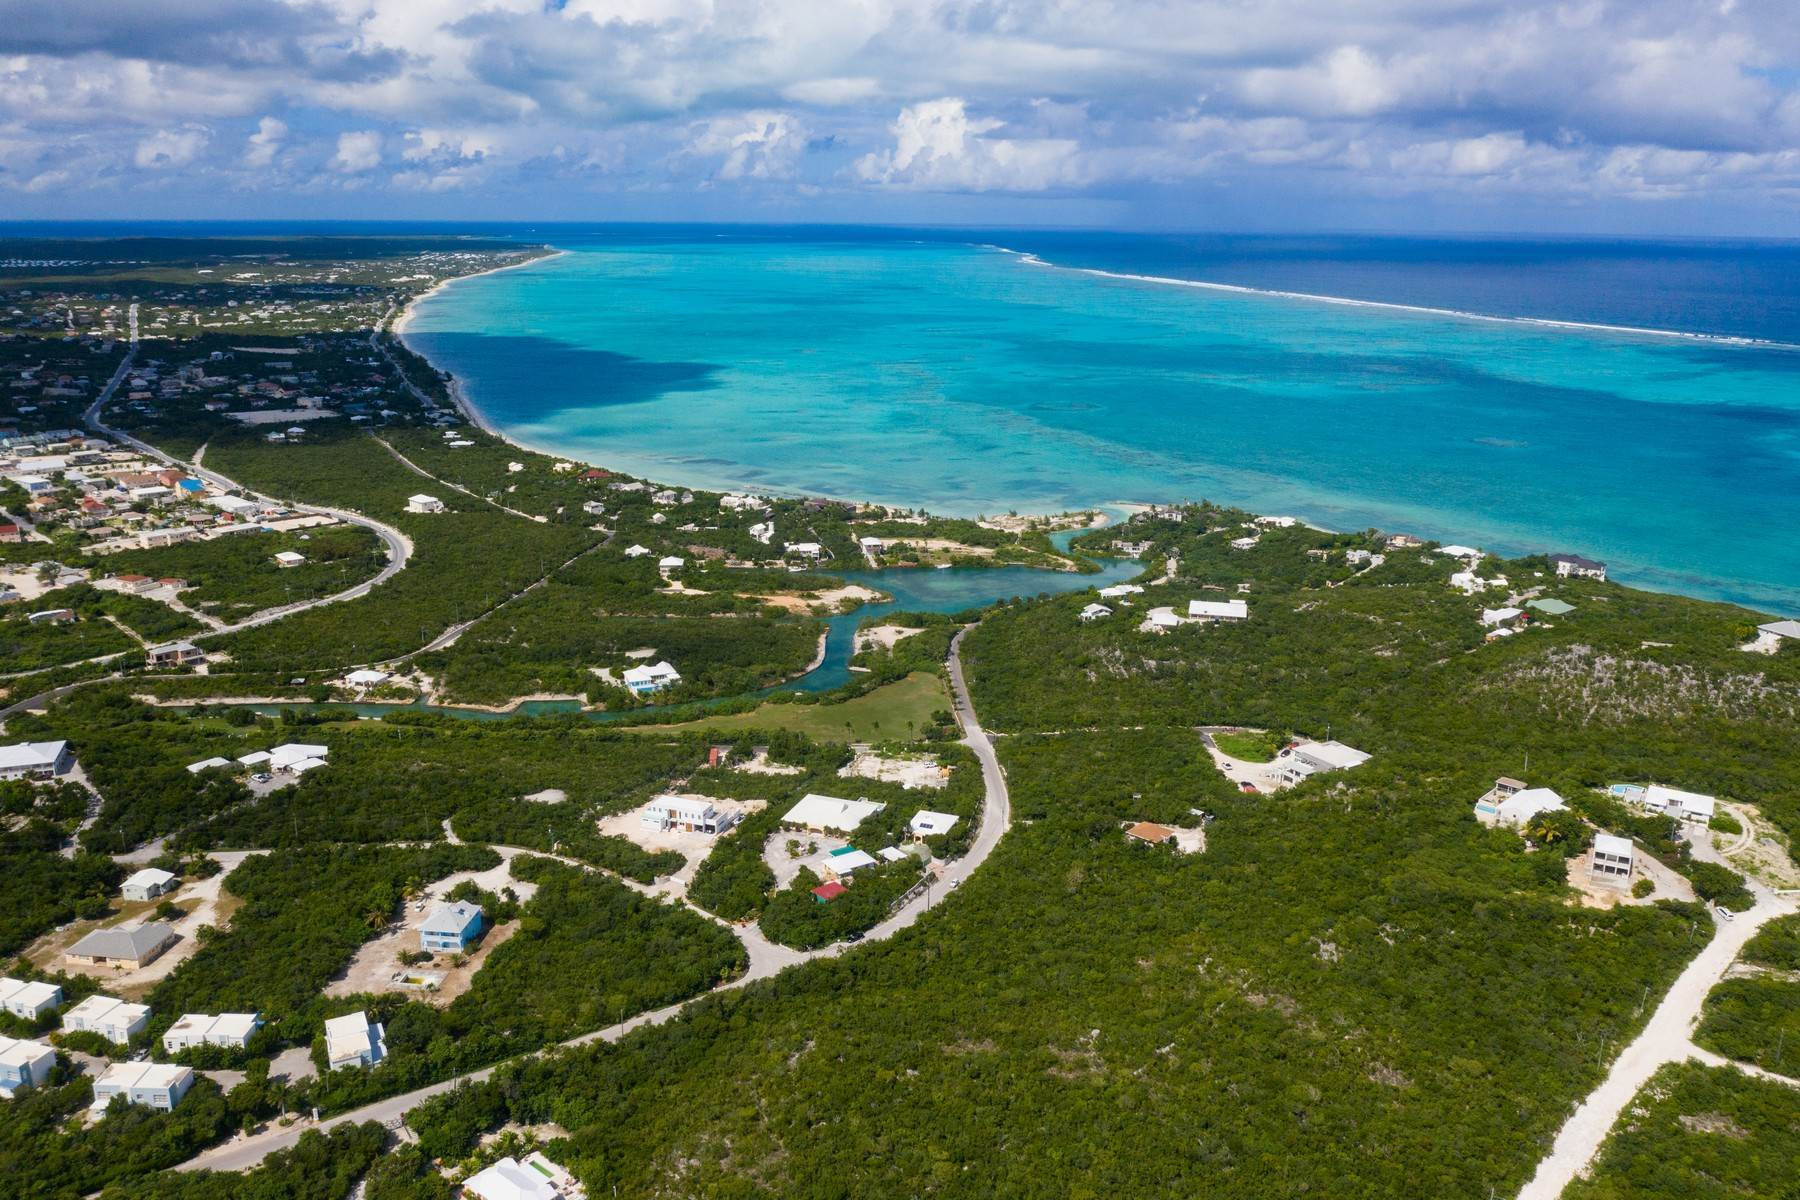 Land for Sale at Oceanview Thompson Cove Lot Thompson Cove, Providenciales Turks And Caicos Islands